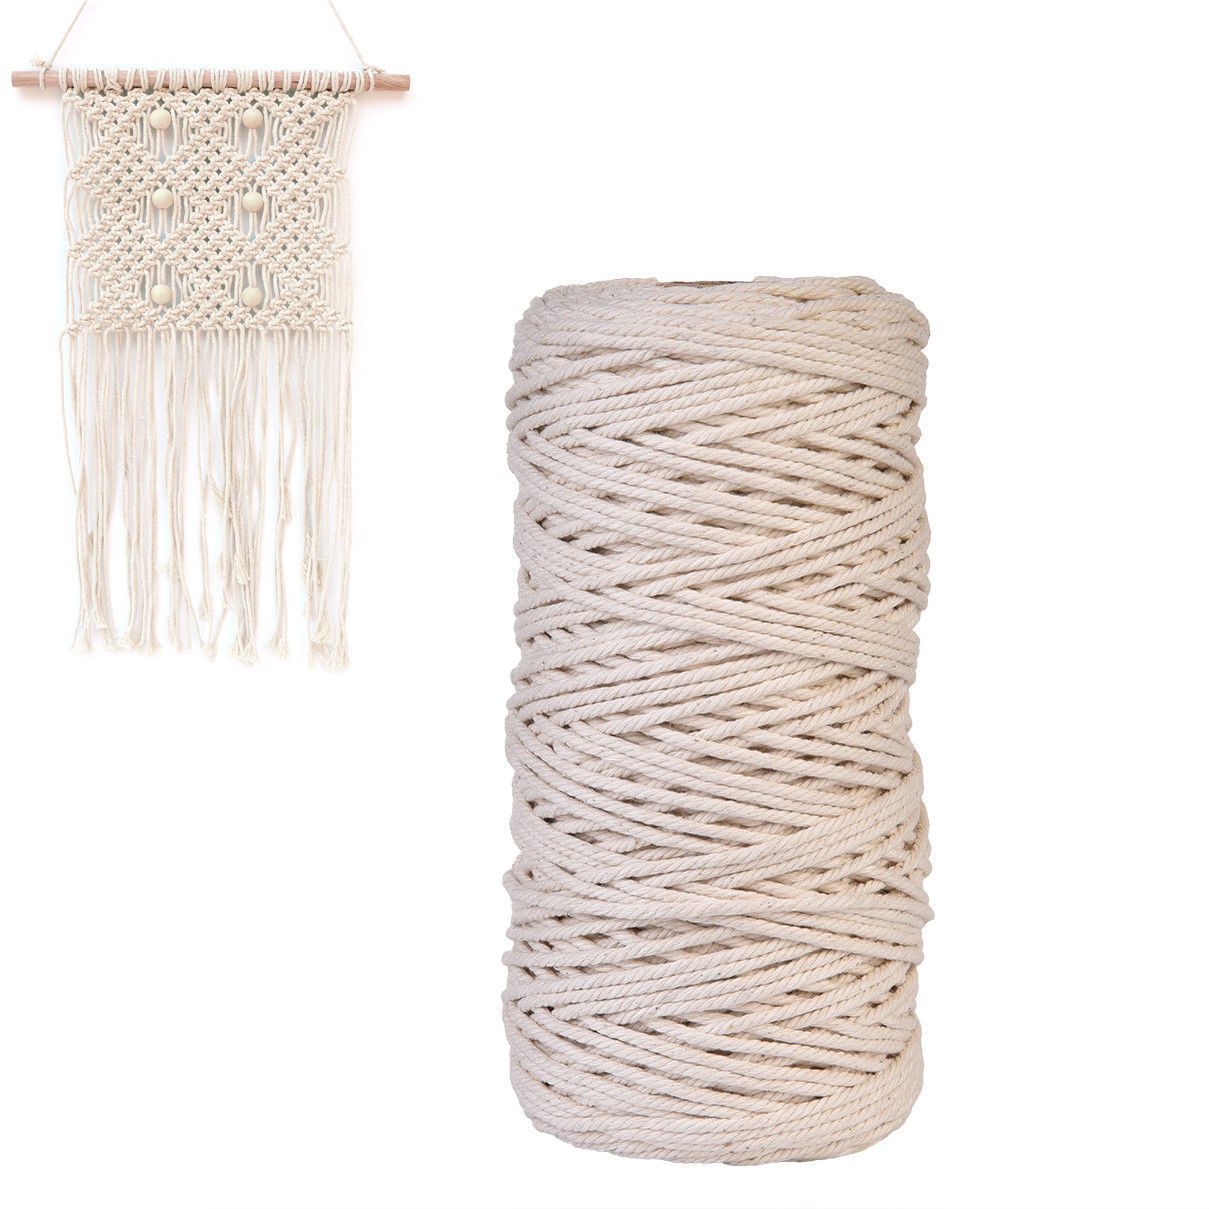 3mm Natural Beige Cotton Twisted Cord Rope Artisan Macrame String DIY Craft 200m